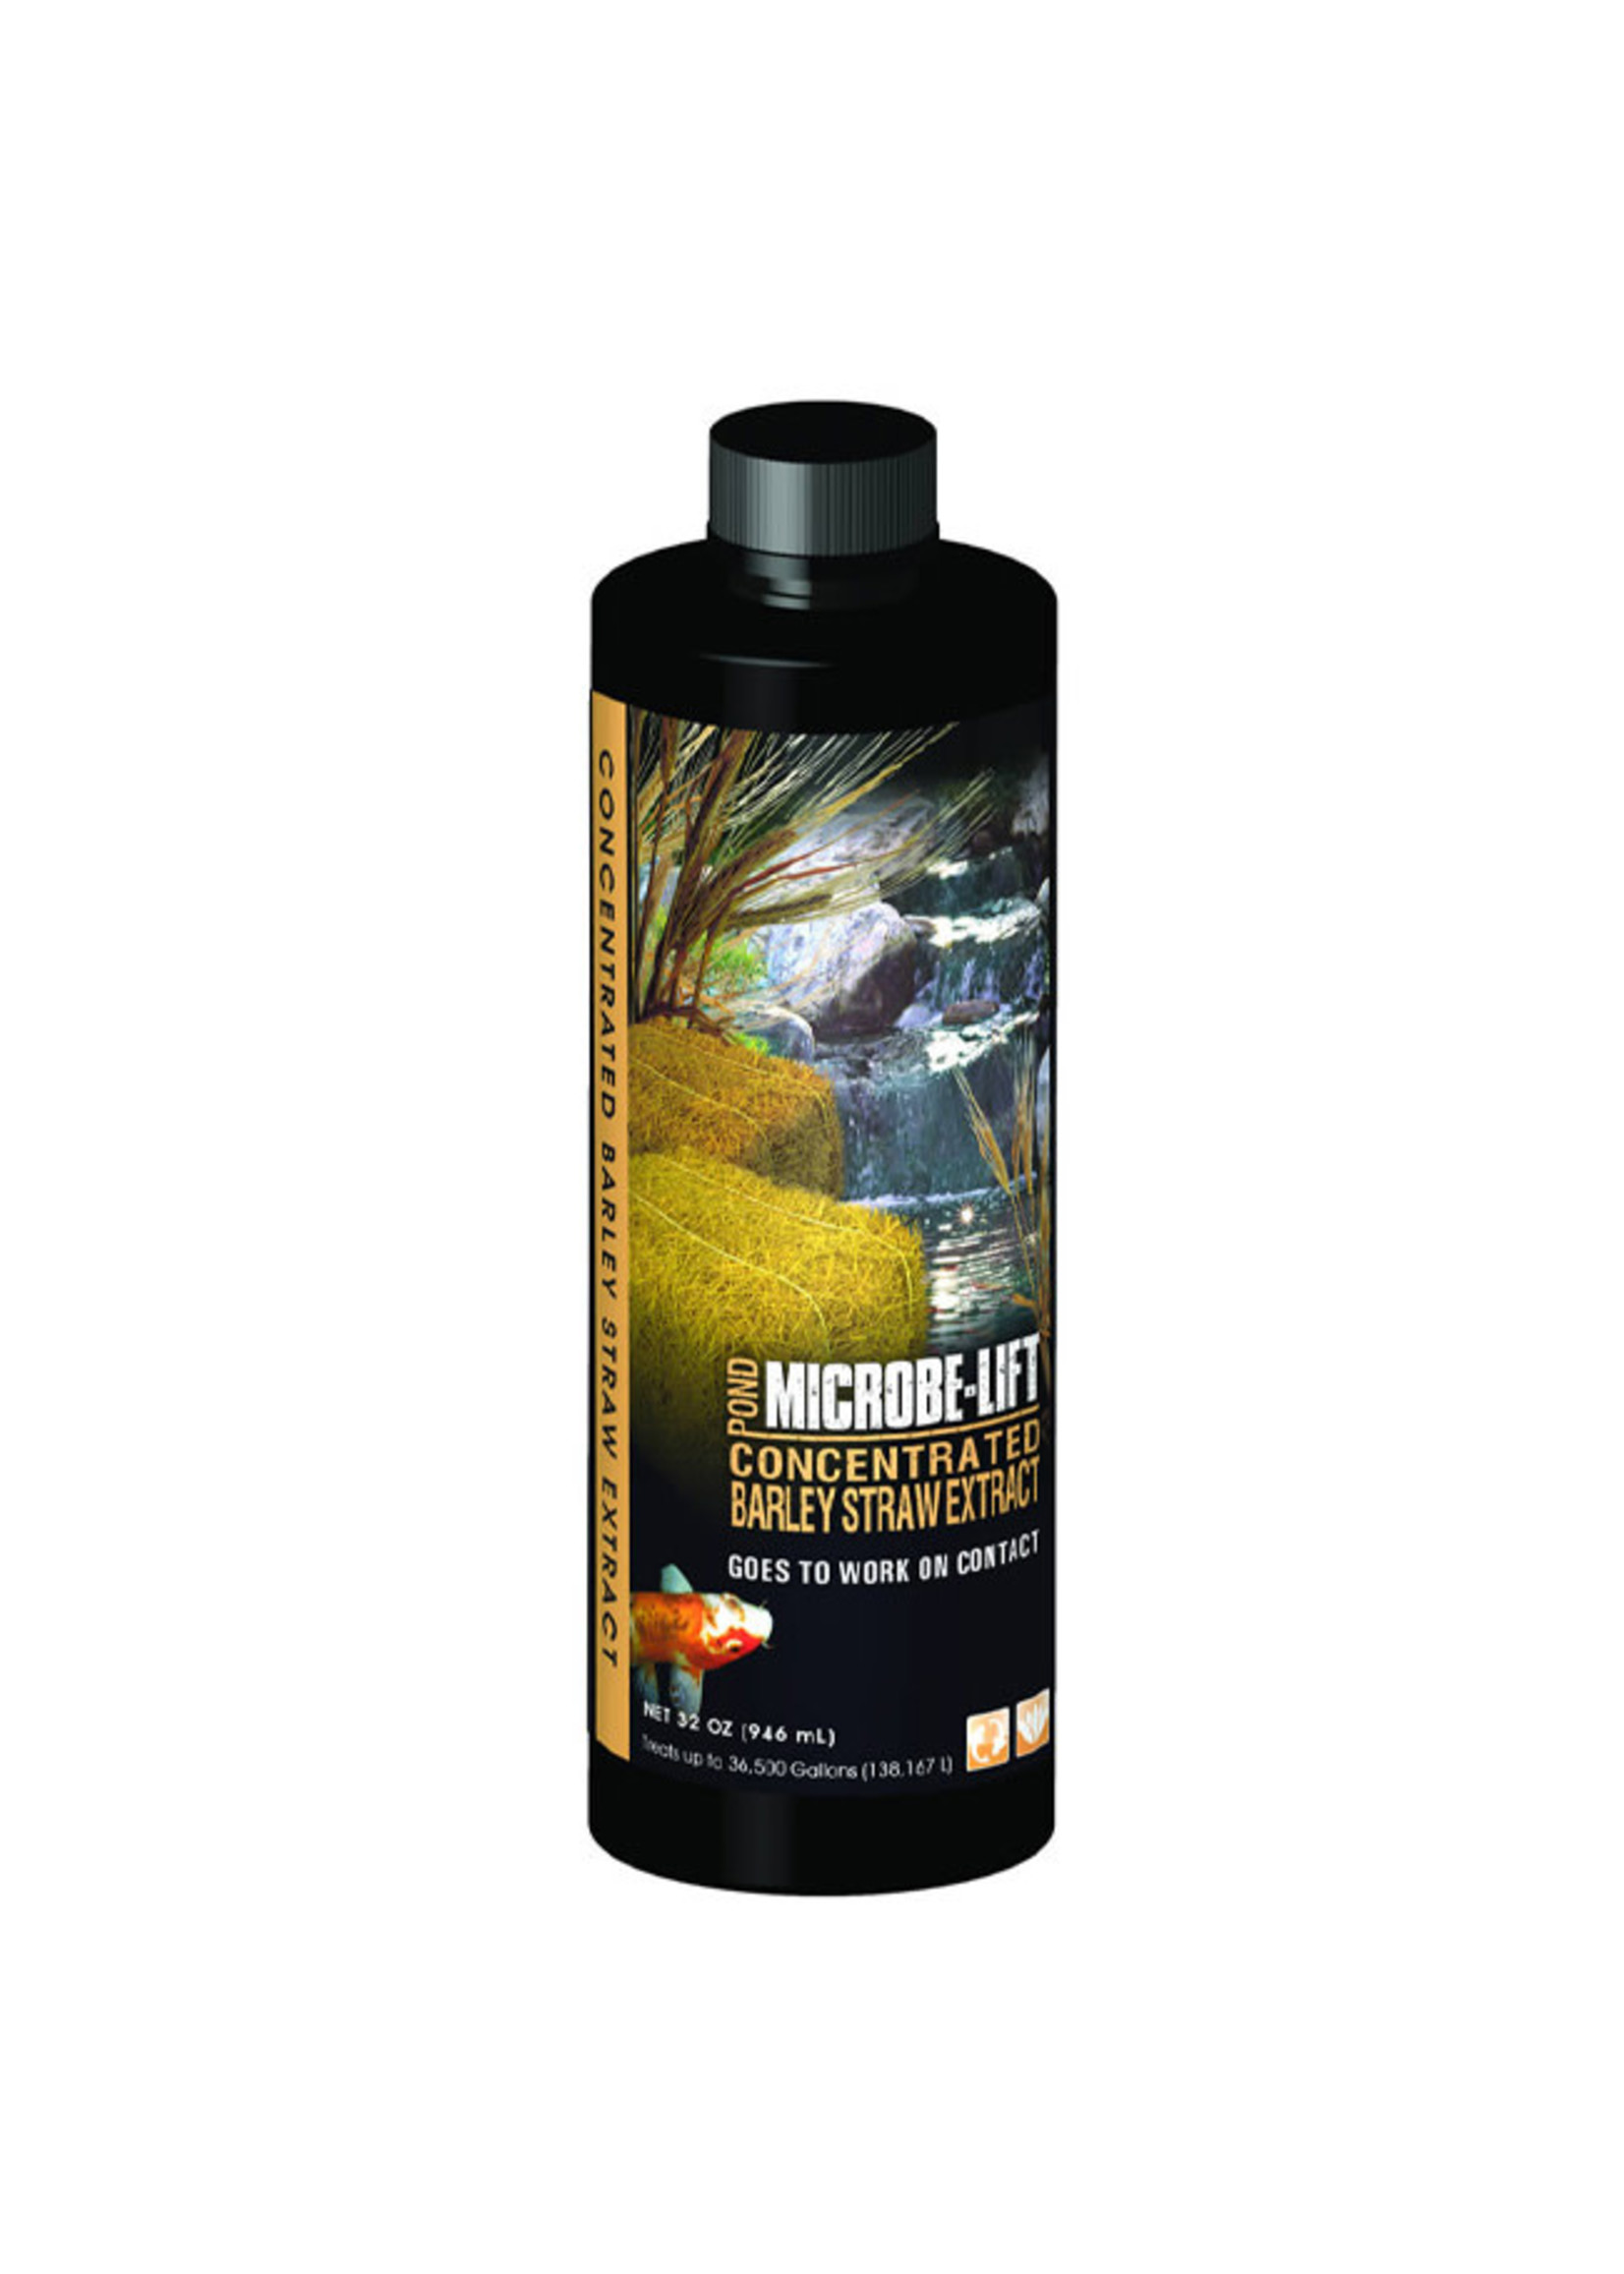 Ecological Laboratories Microbe-Lift Concentrated Barley Straw Extract 946ml / 32oz